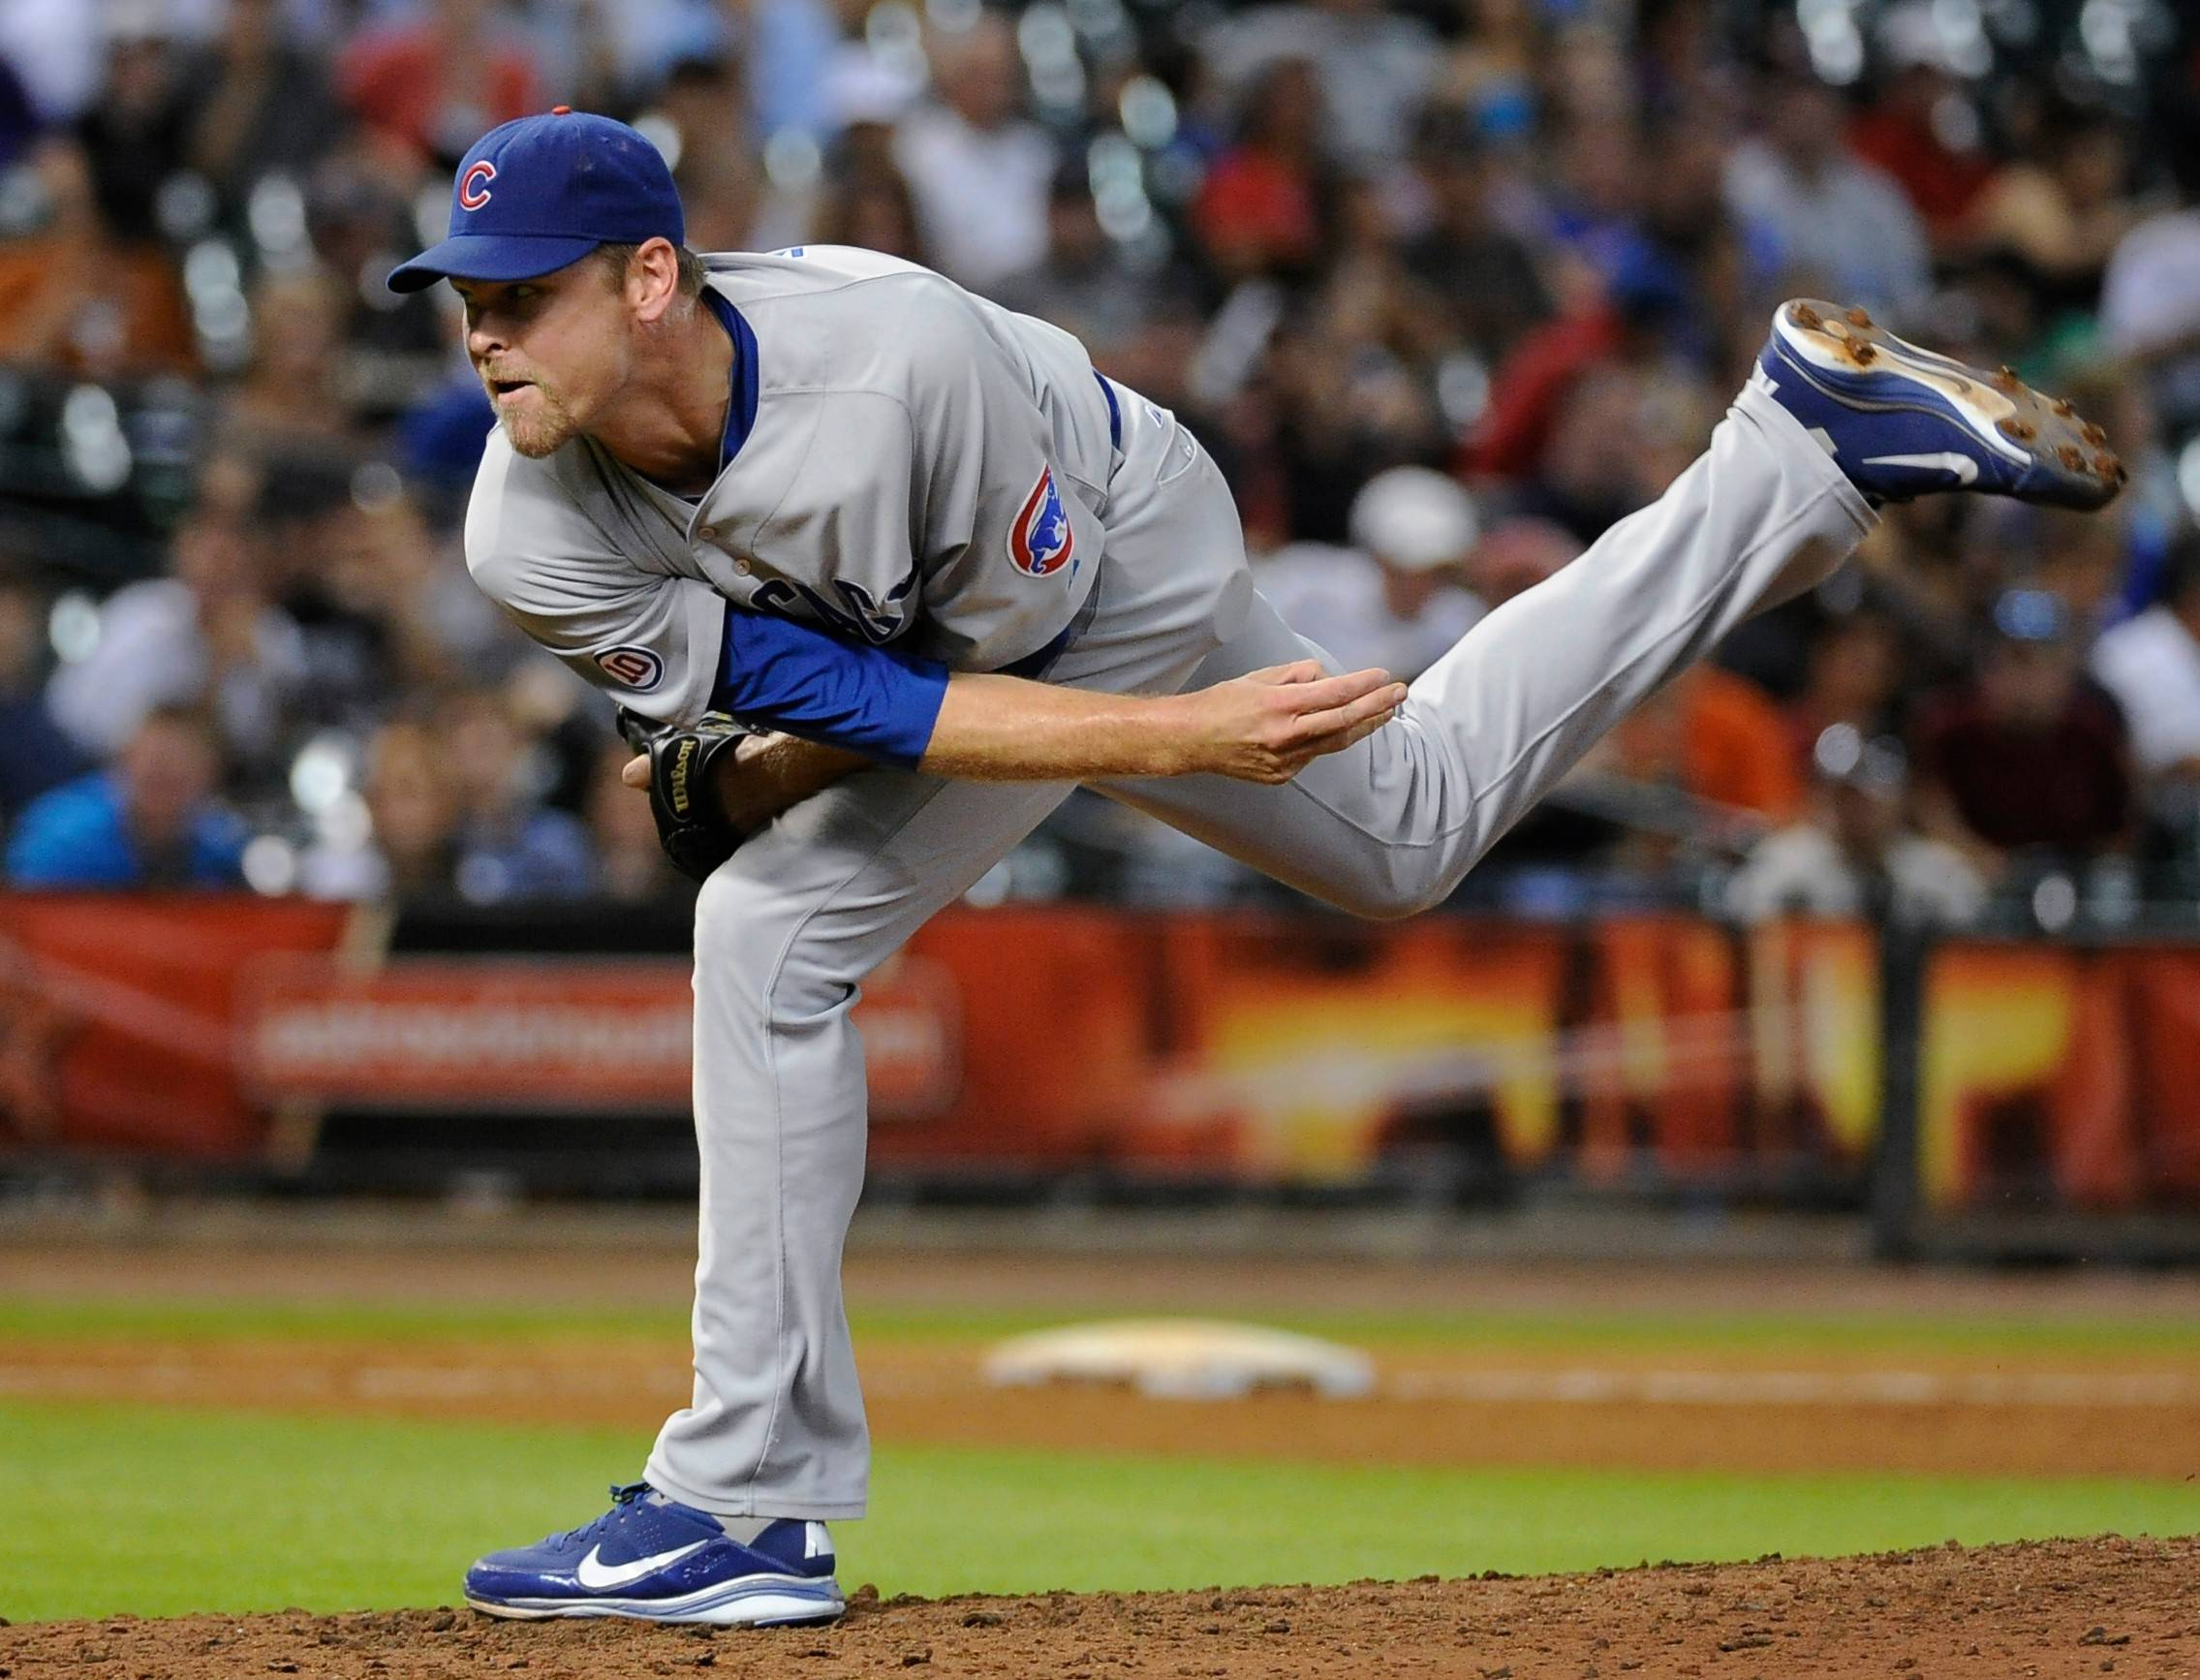 The Cubs announced Friday that free agent pitcher and fan favorite Kerry Wood will return for the 2012 season.